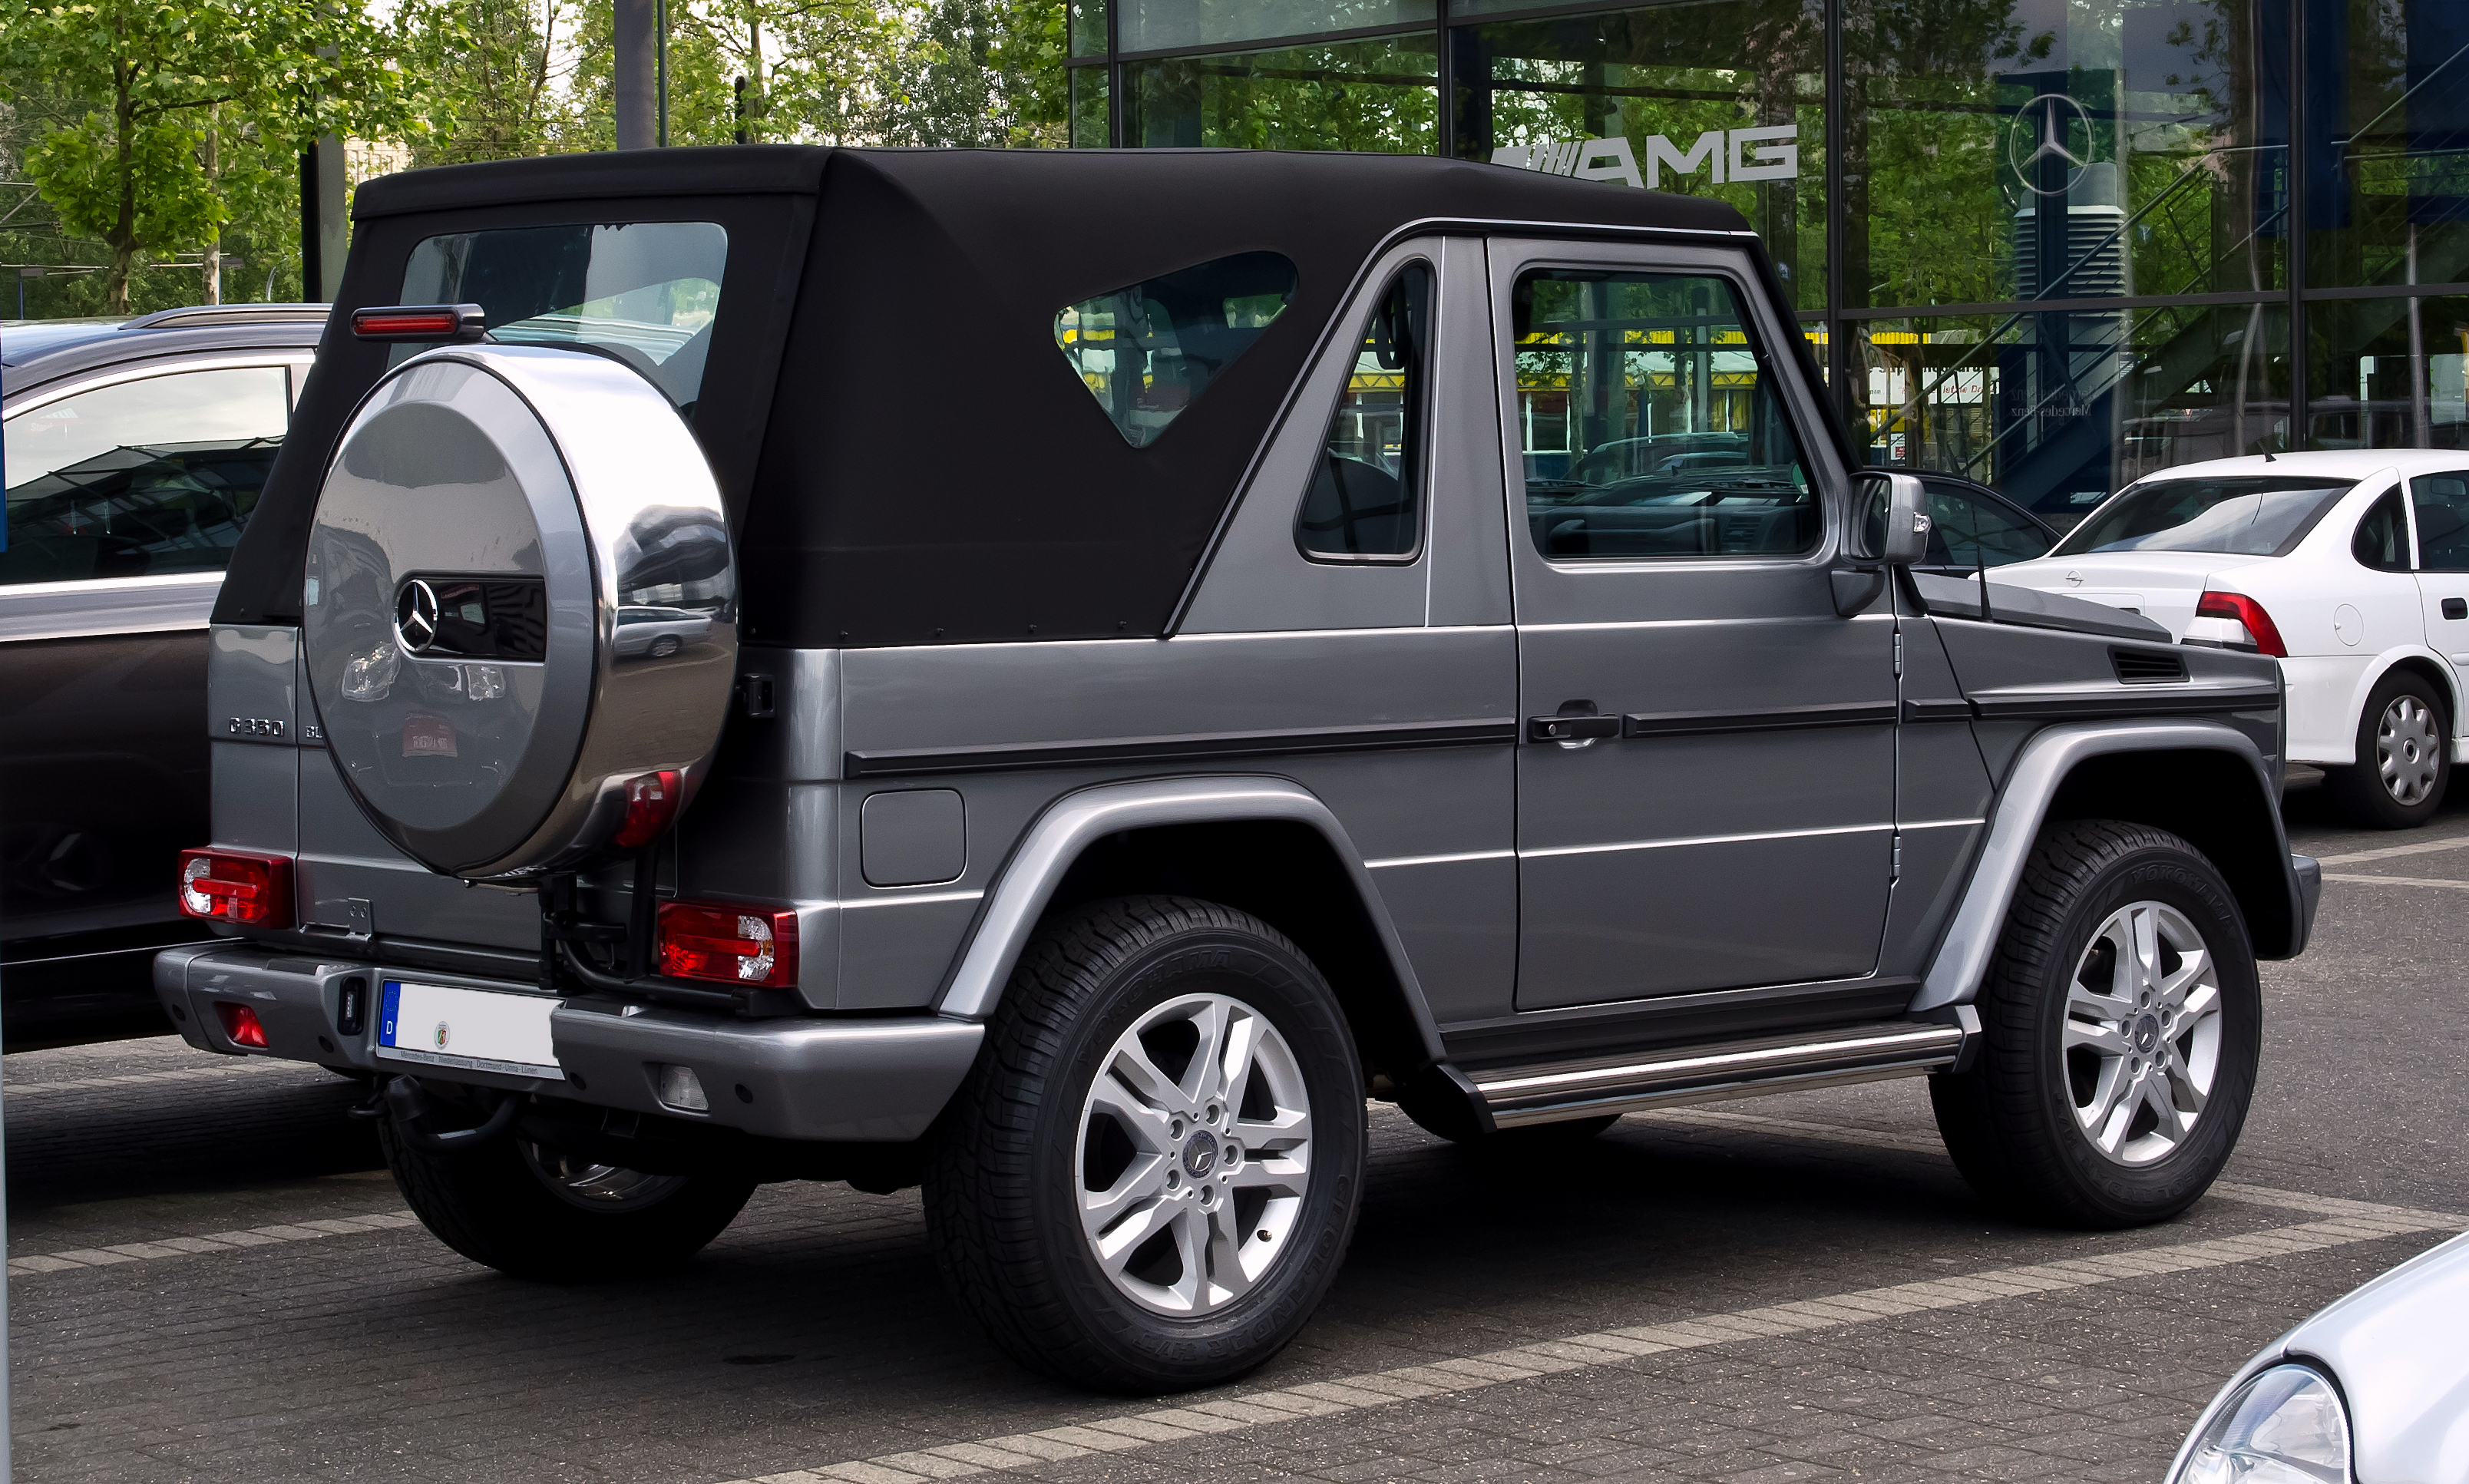 File:Mercedes-Benz G 350 BlueTEC Cabriolet (W 463, 2. Facelift